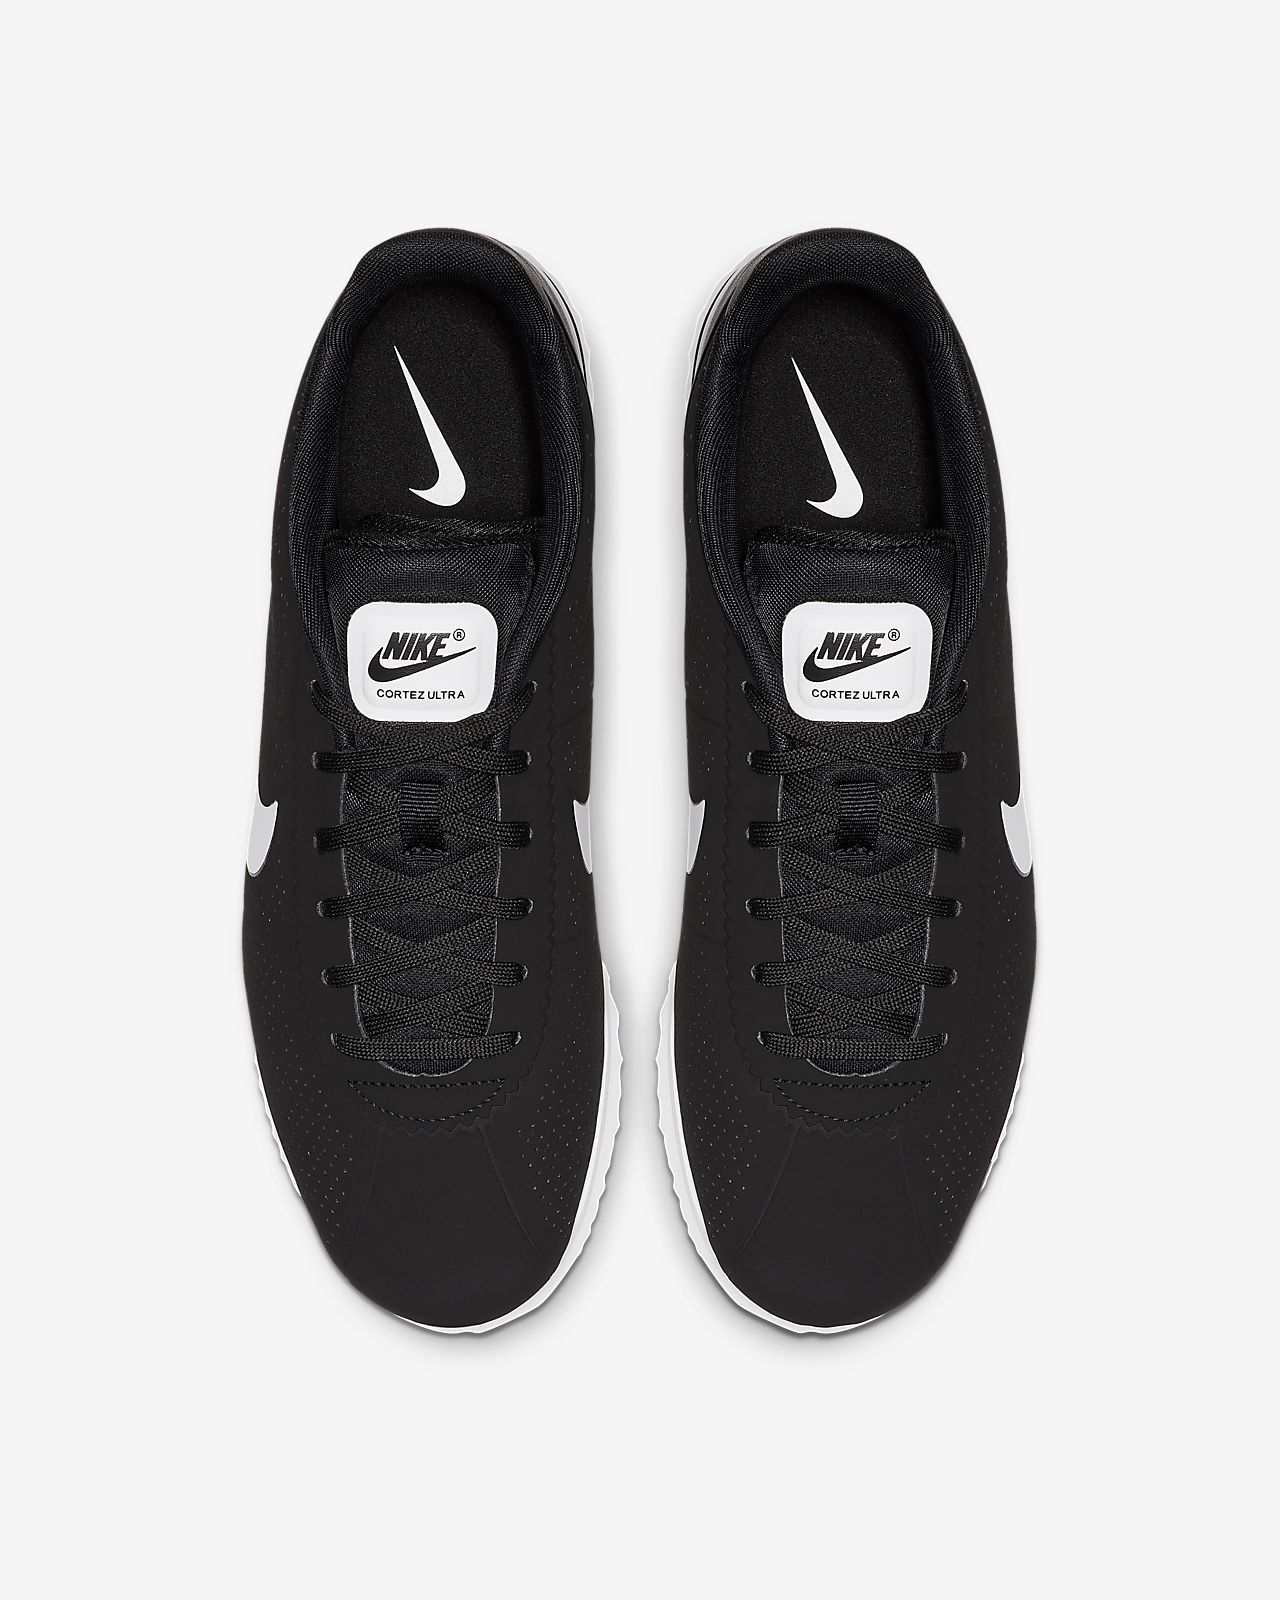 white air max 1 ultra moire nz|Free delivery!